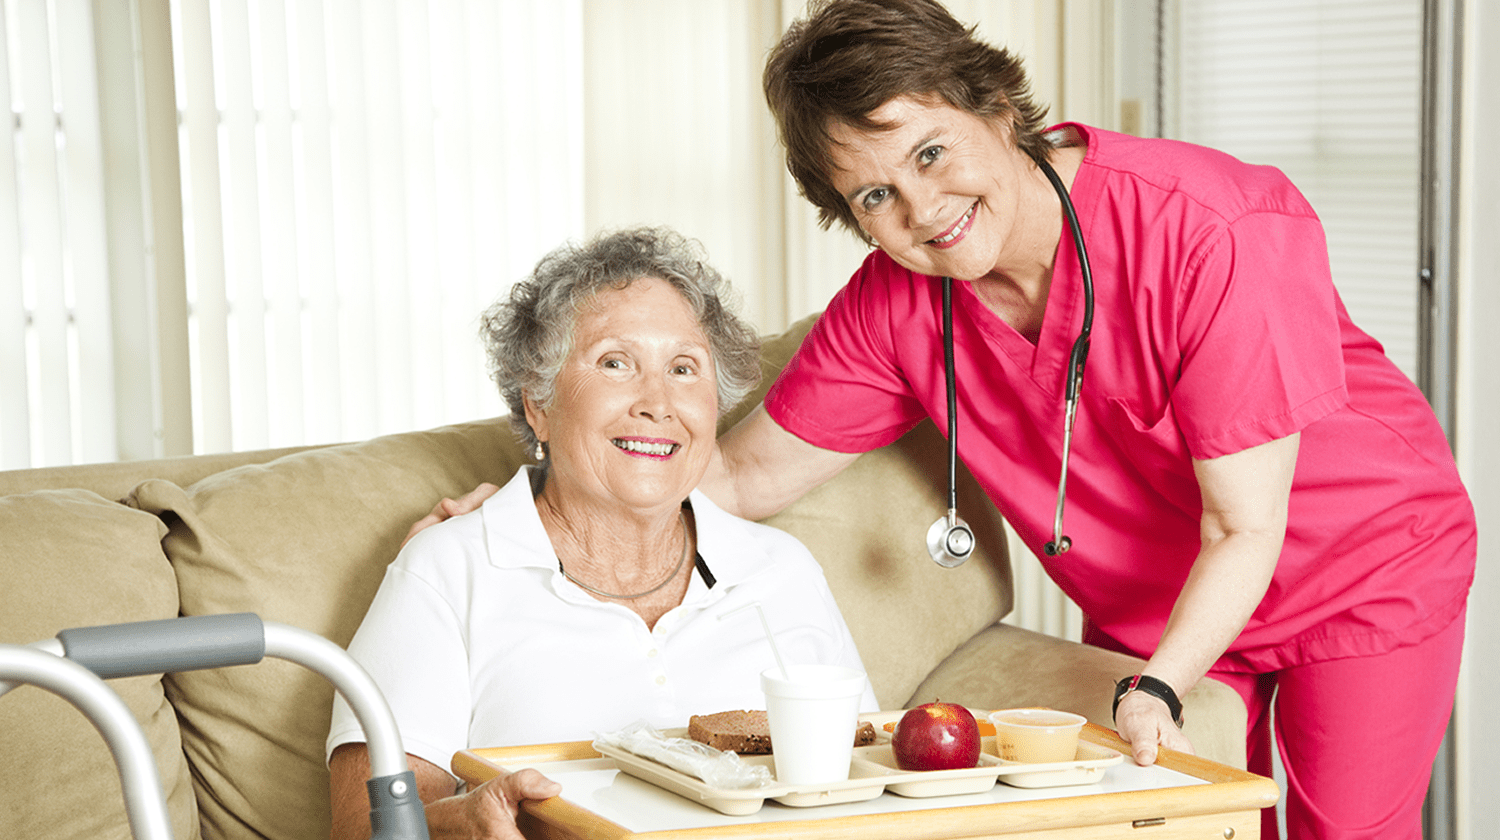 Home Care Service Nearby Seniors Financial Assistance And Housing Ontario 211 Blog